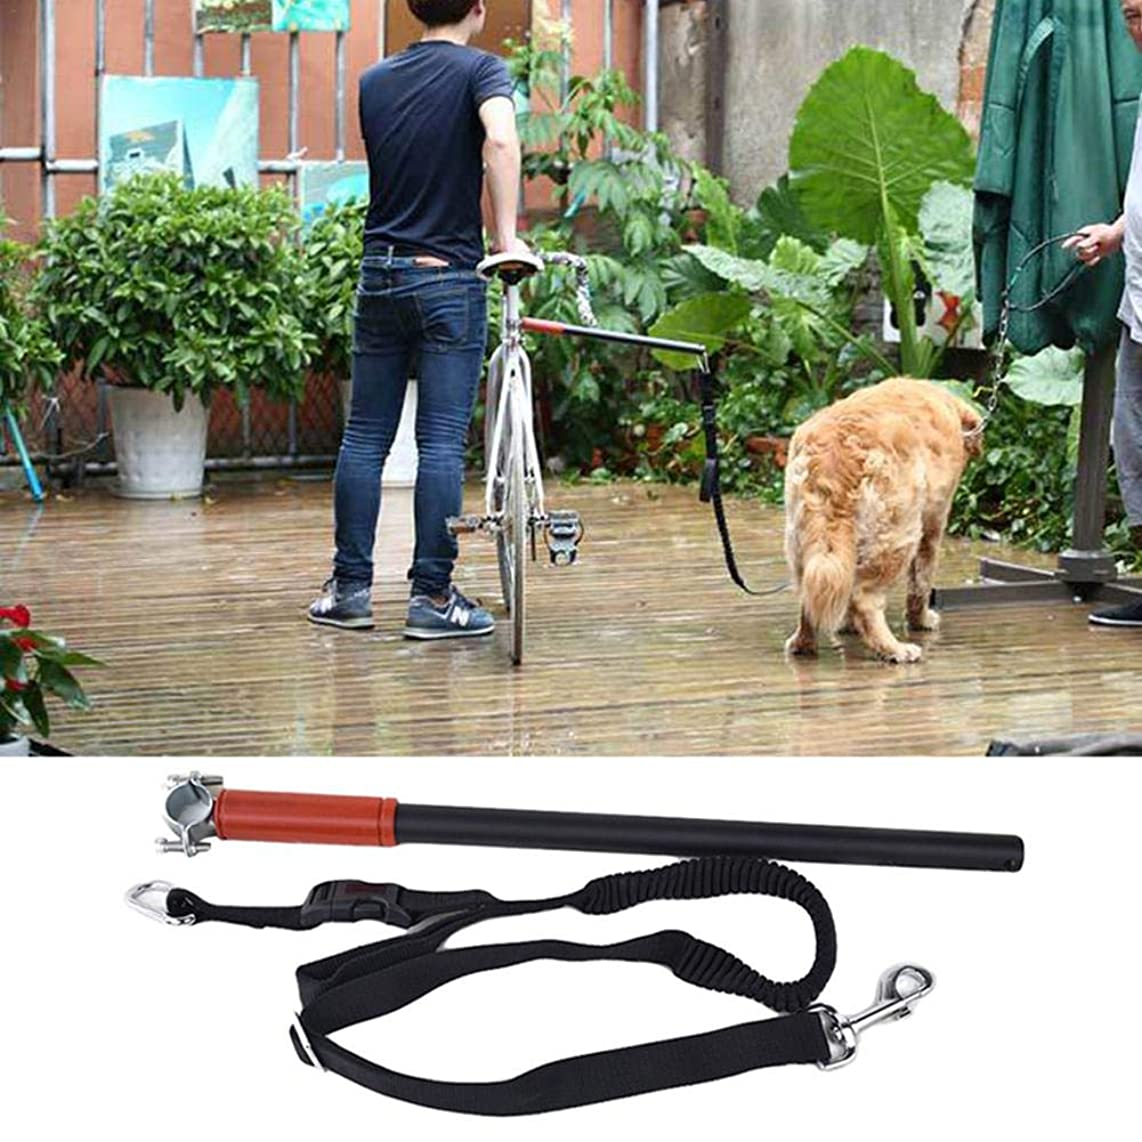 Lijuan Qin Hands Free Bicycle Dog Exerciser Leash Pet Supplies for Exercising Training Jogging Cycling and Outdoor